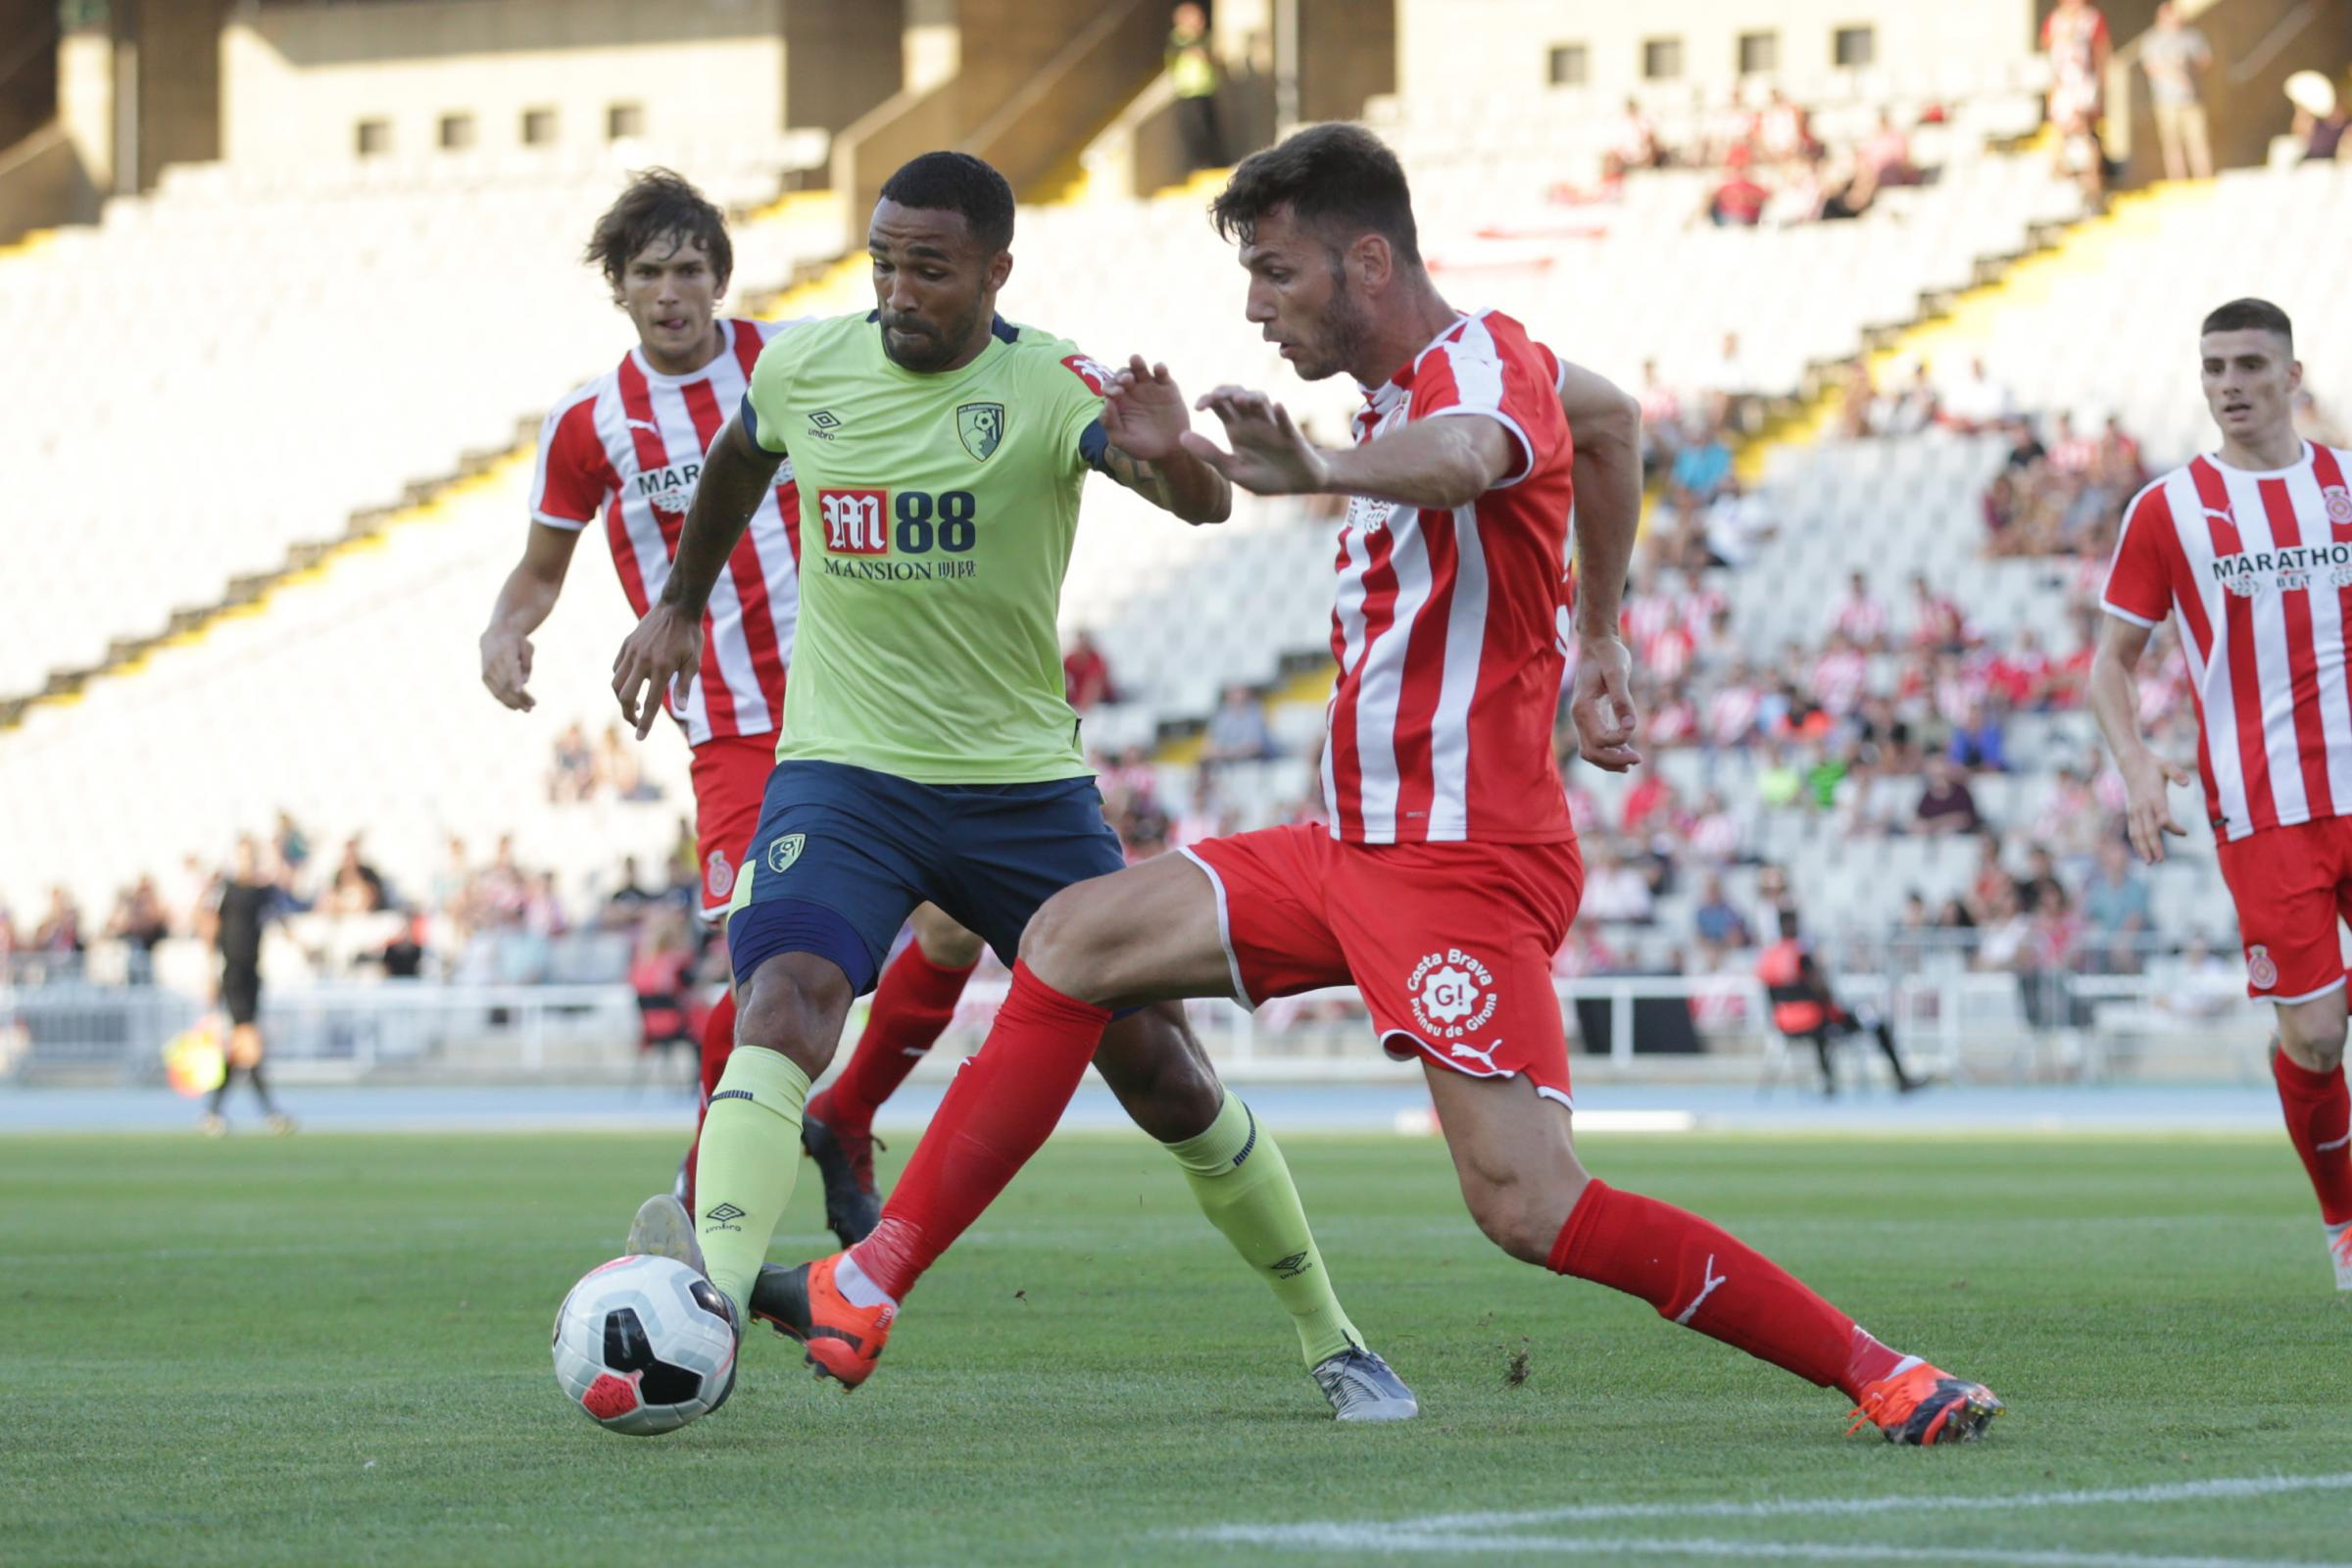 AFC Bournemouth suffer defeat against Girona after Jack Simpson red card